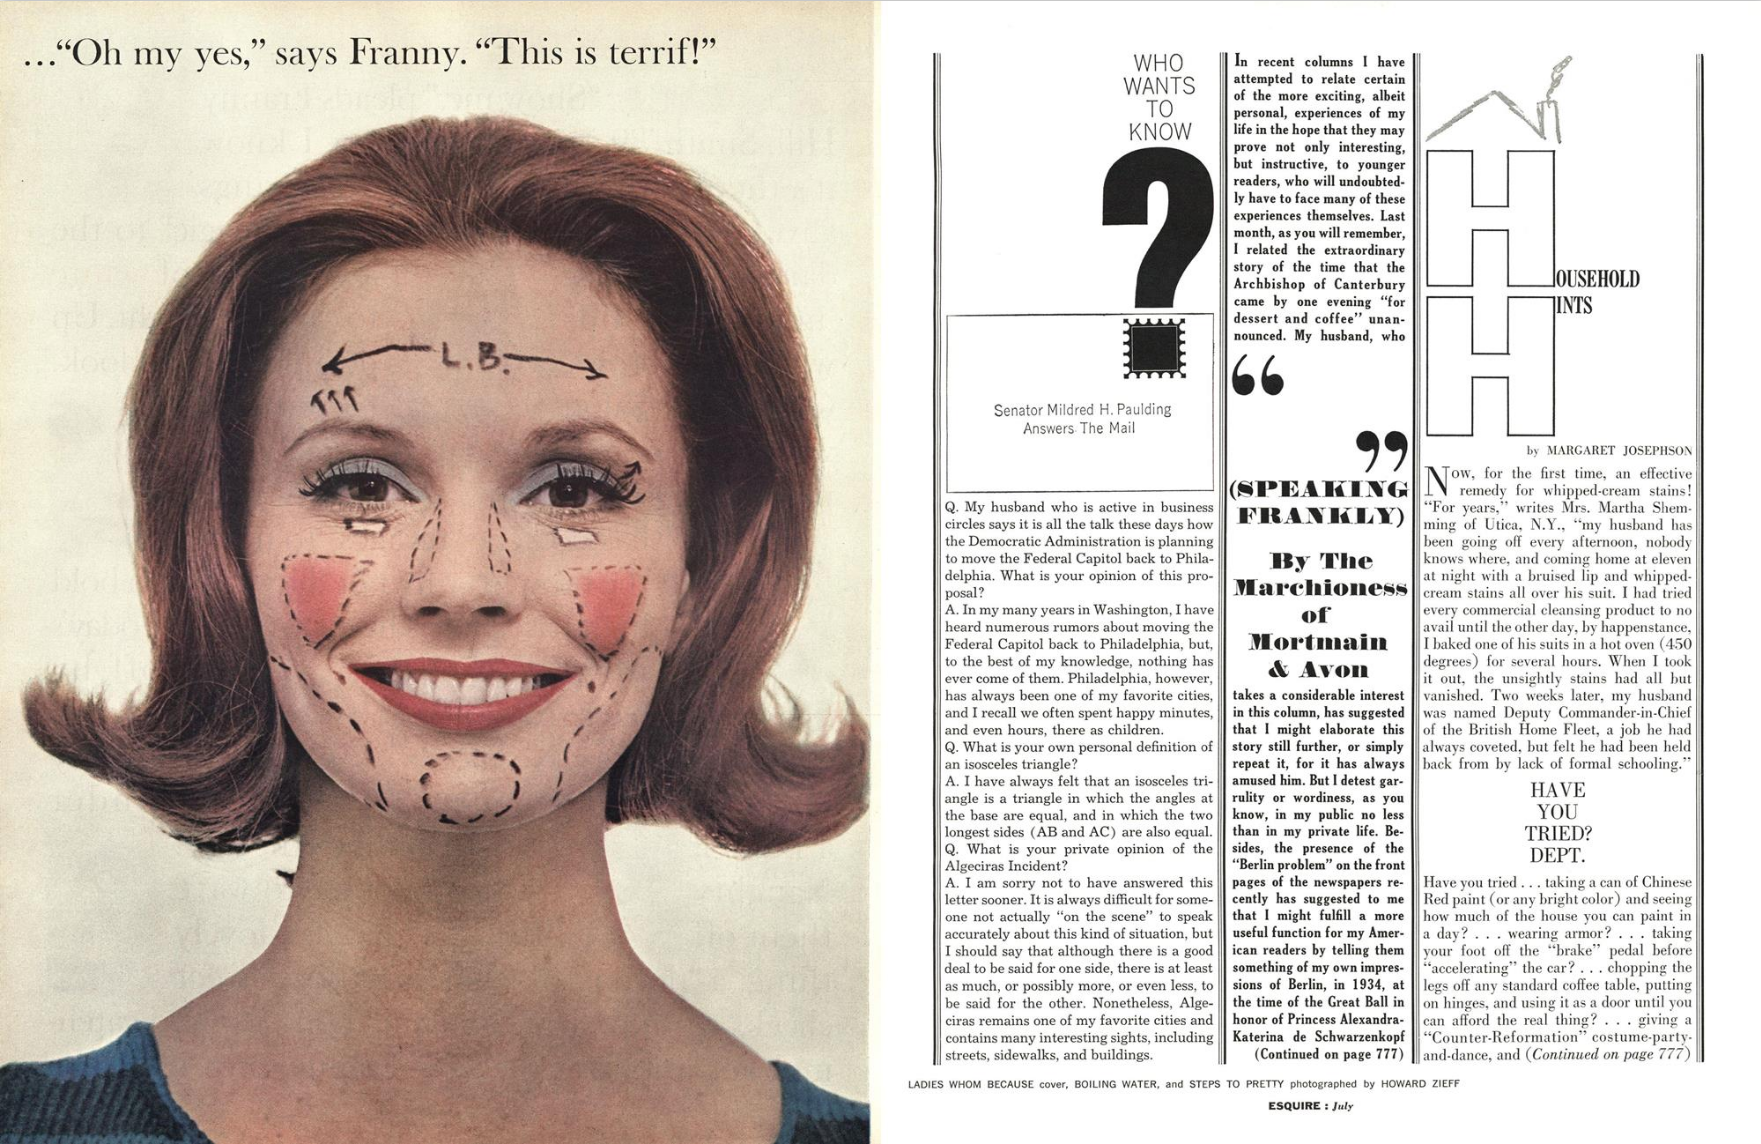 Howard Zieff 'Oh my Yes', Esquire